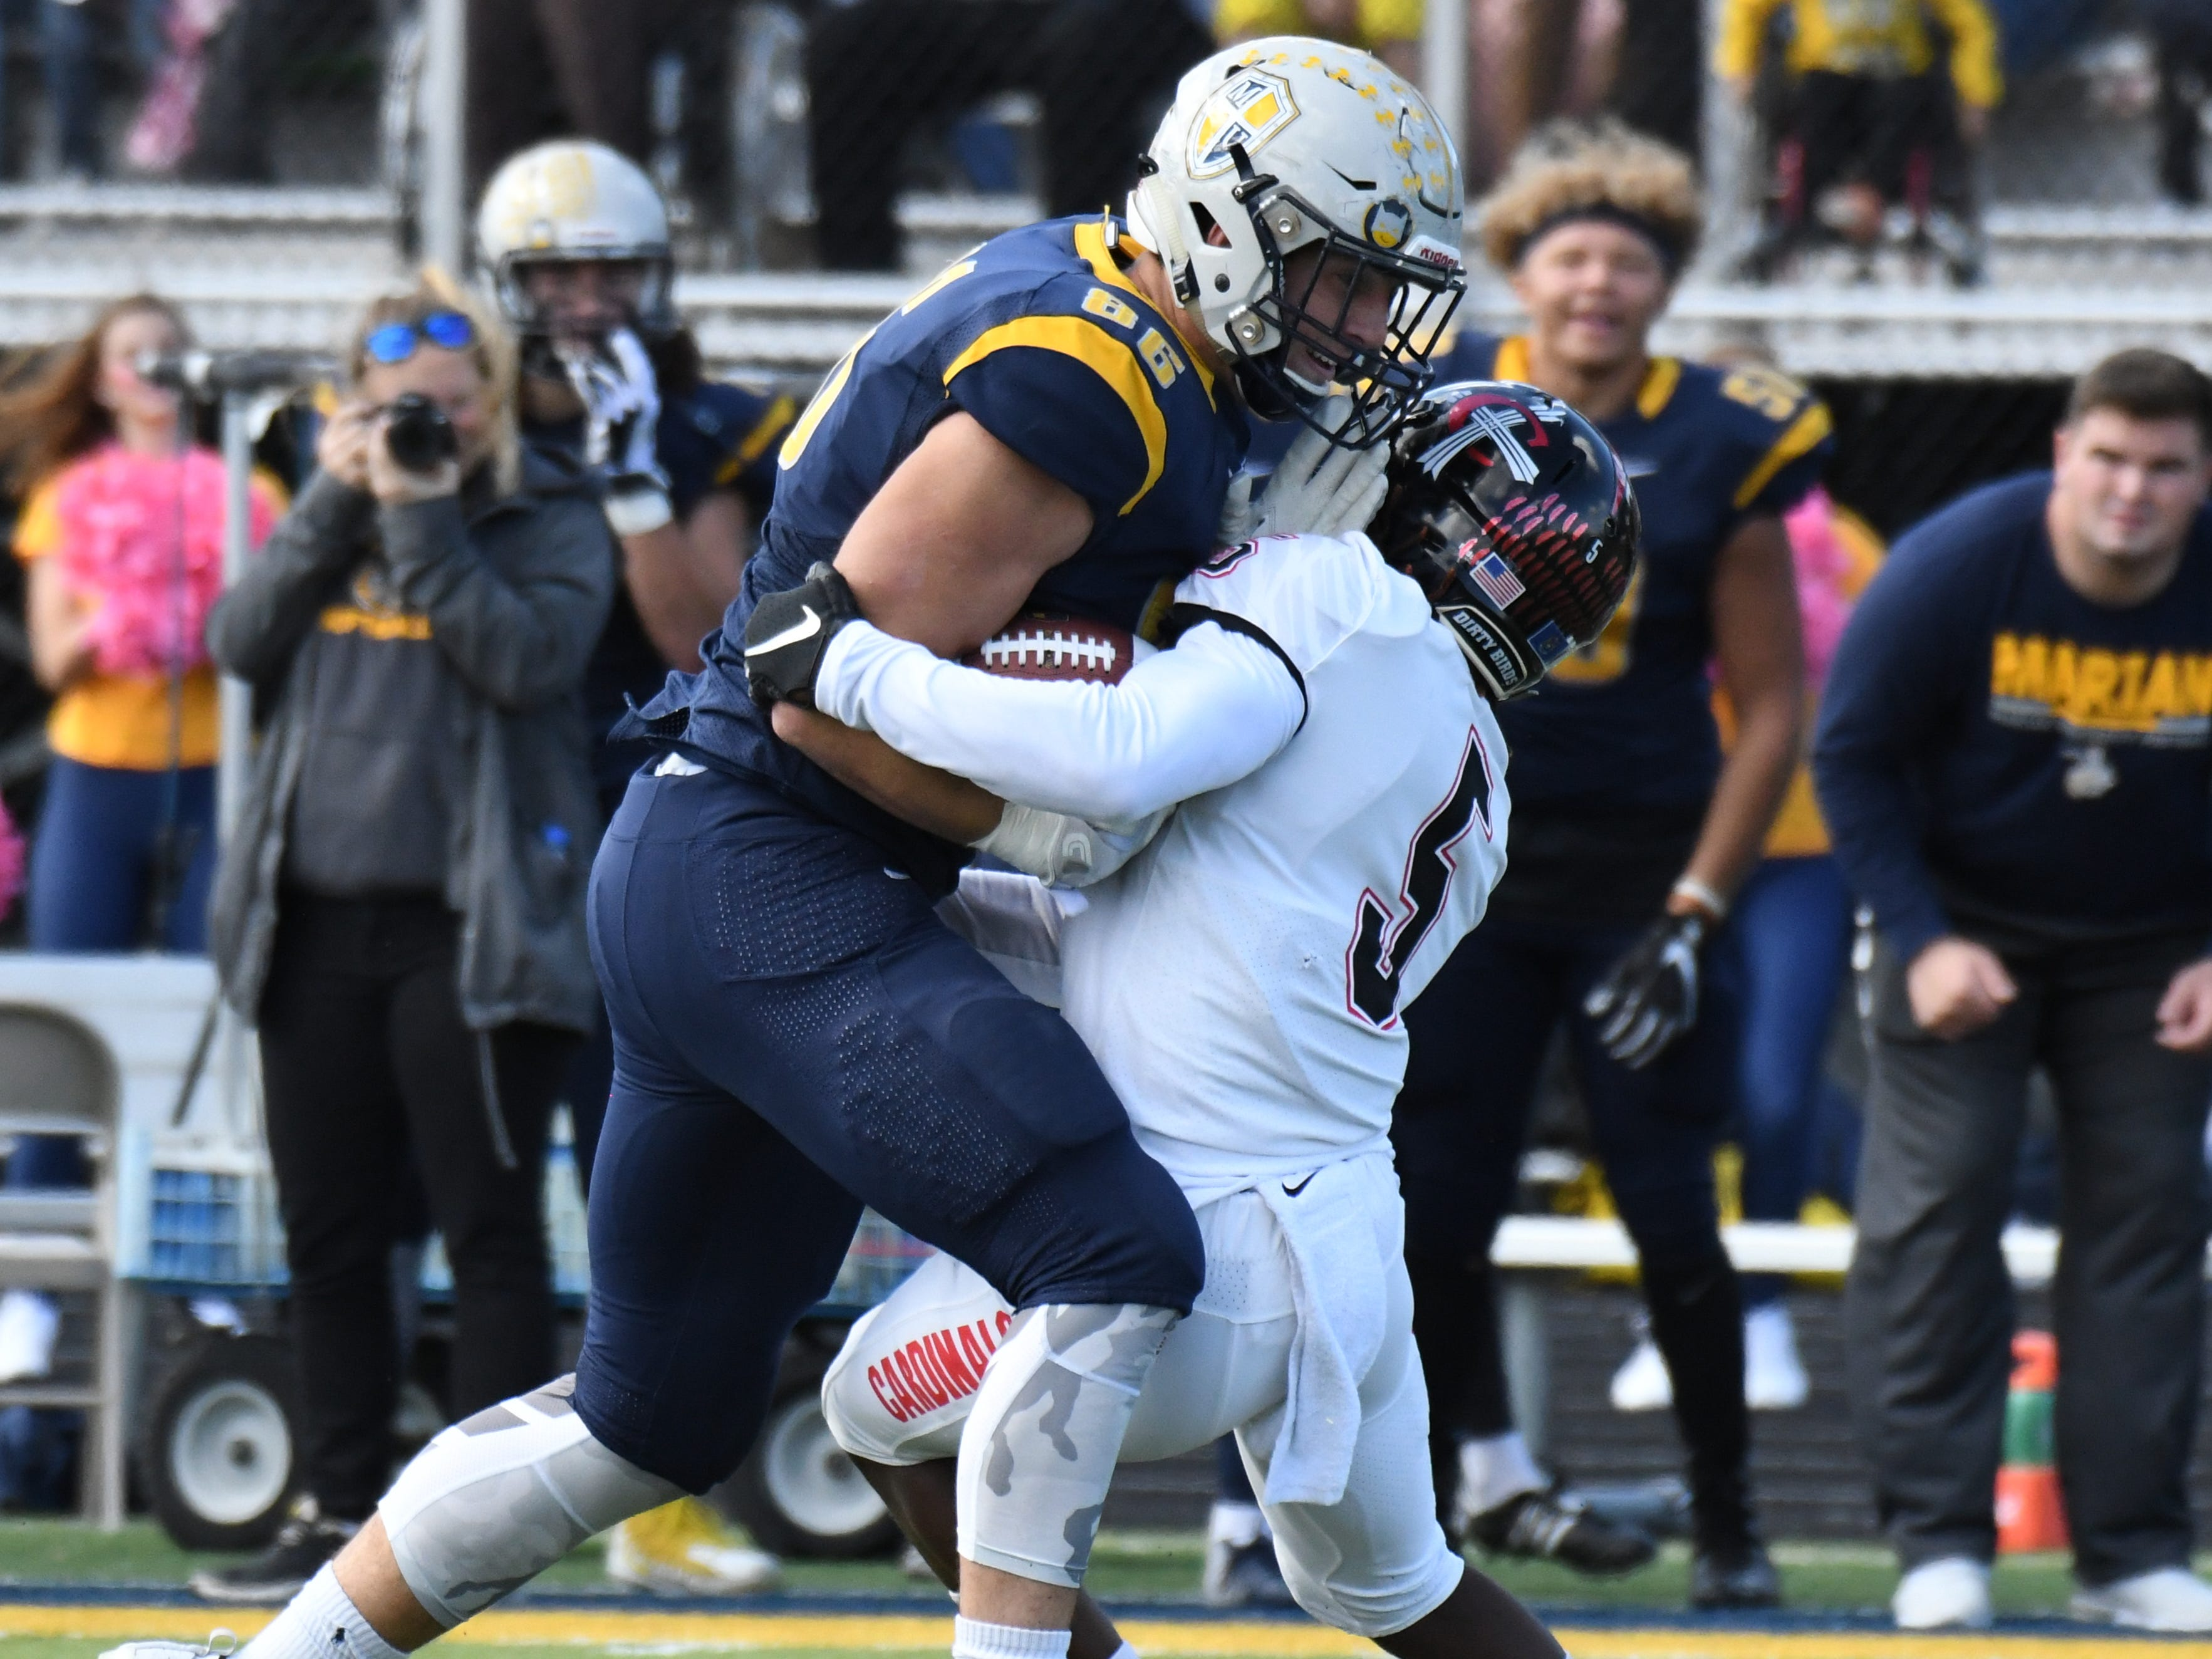 Marian University tight end Brandon Dillon collides with a Concordia defender.